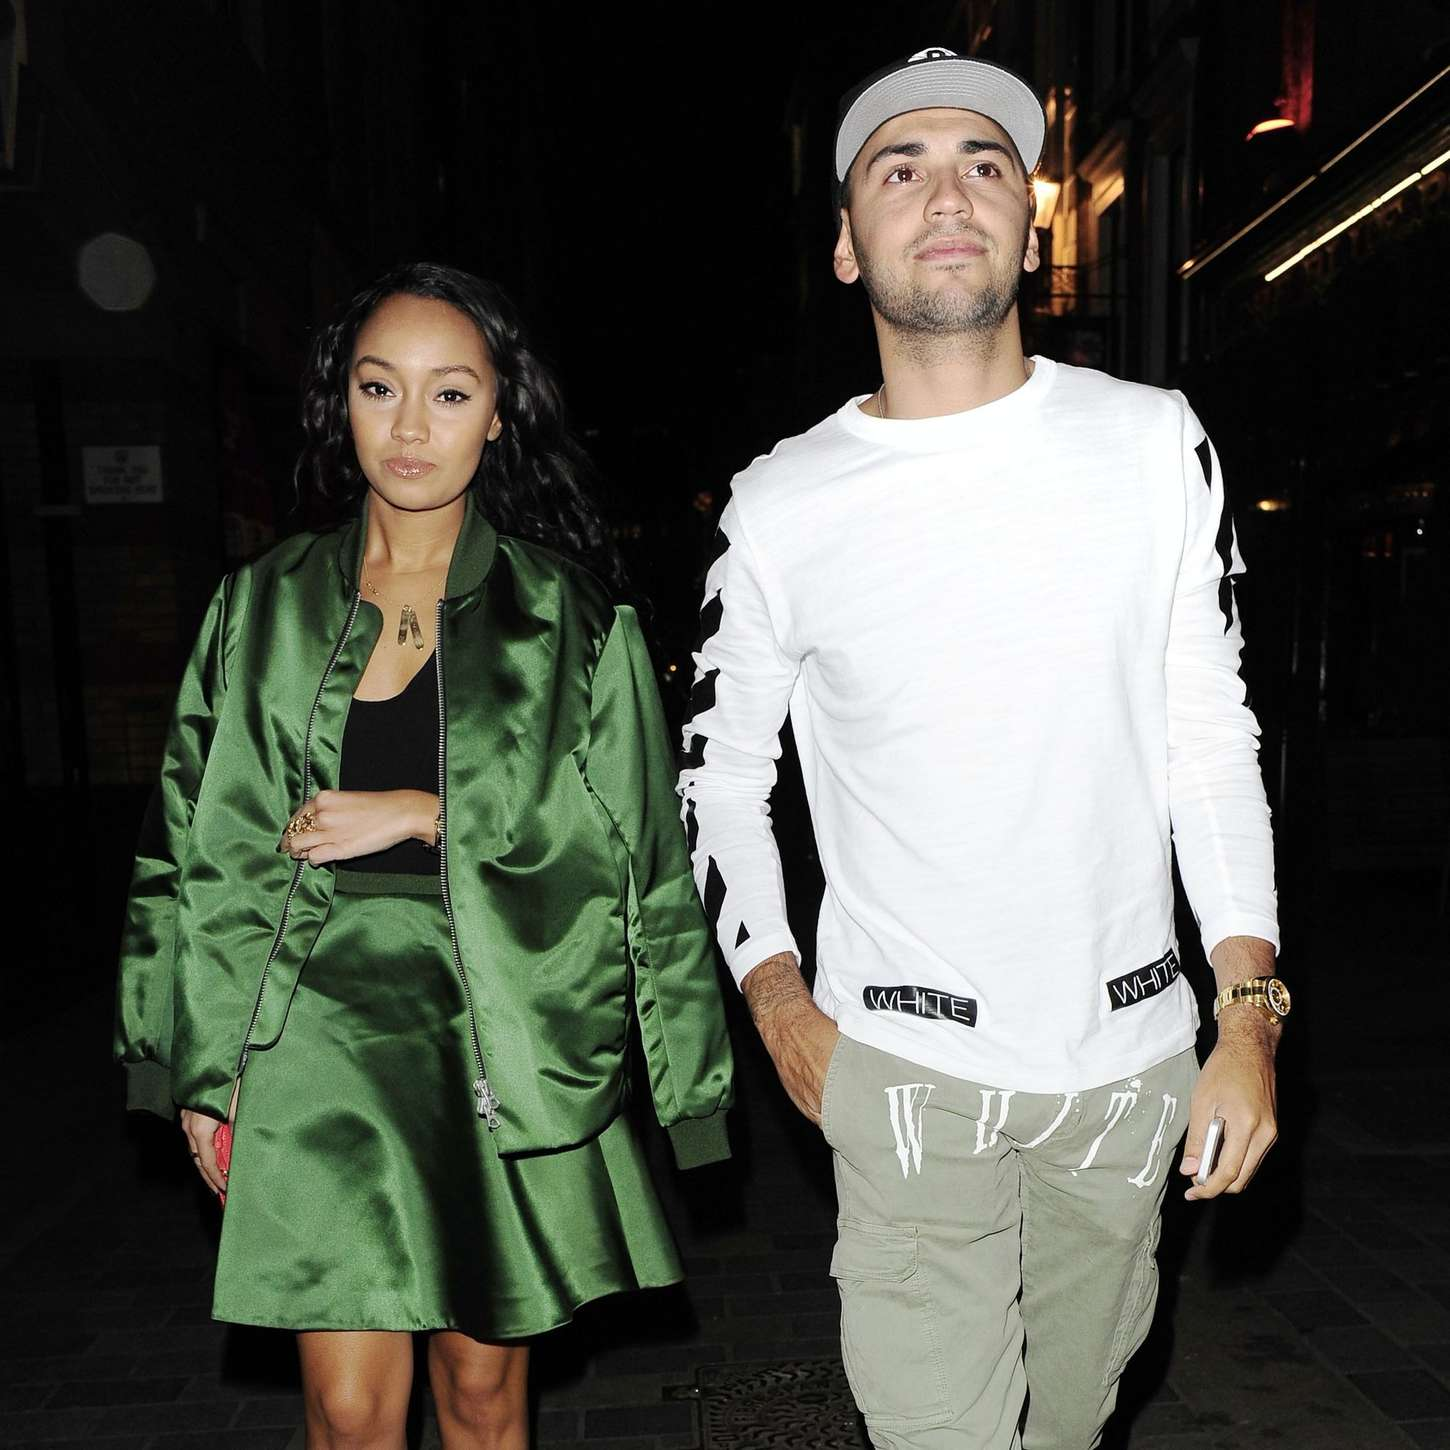 Leigh-Anne Pinnock Leaving Jinjuu Restaurant with her boyfriend in London